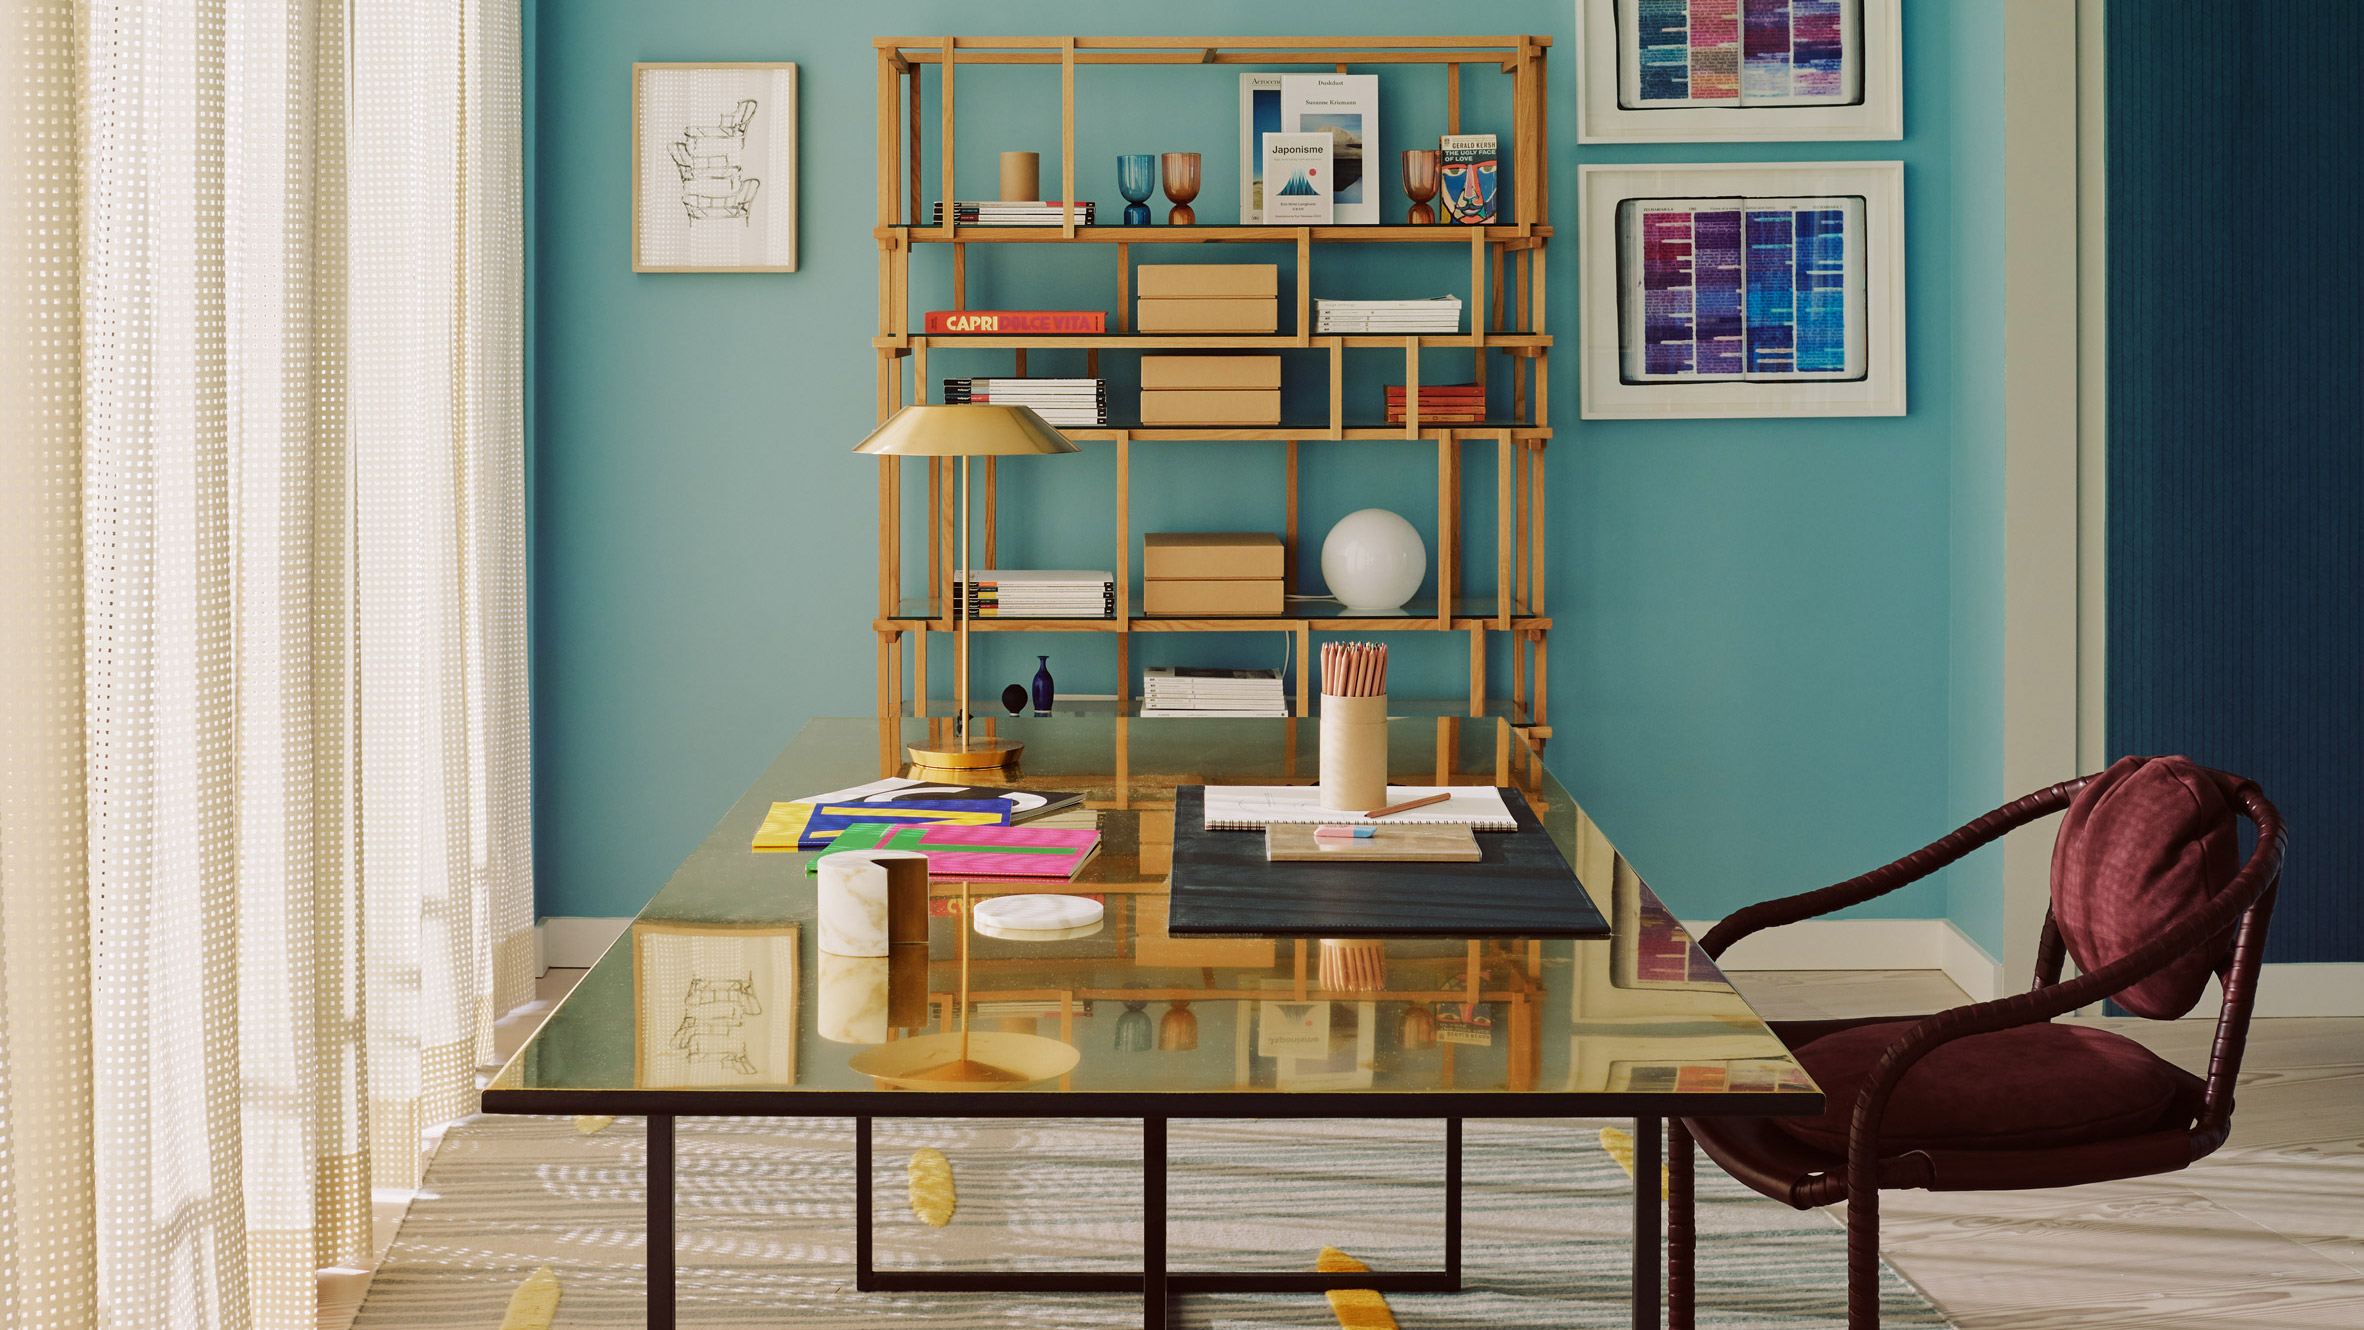 Eight home offices with stylish set-ups for remote working